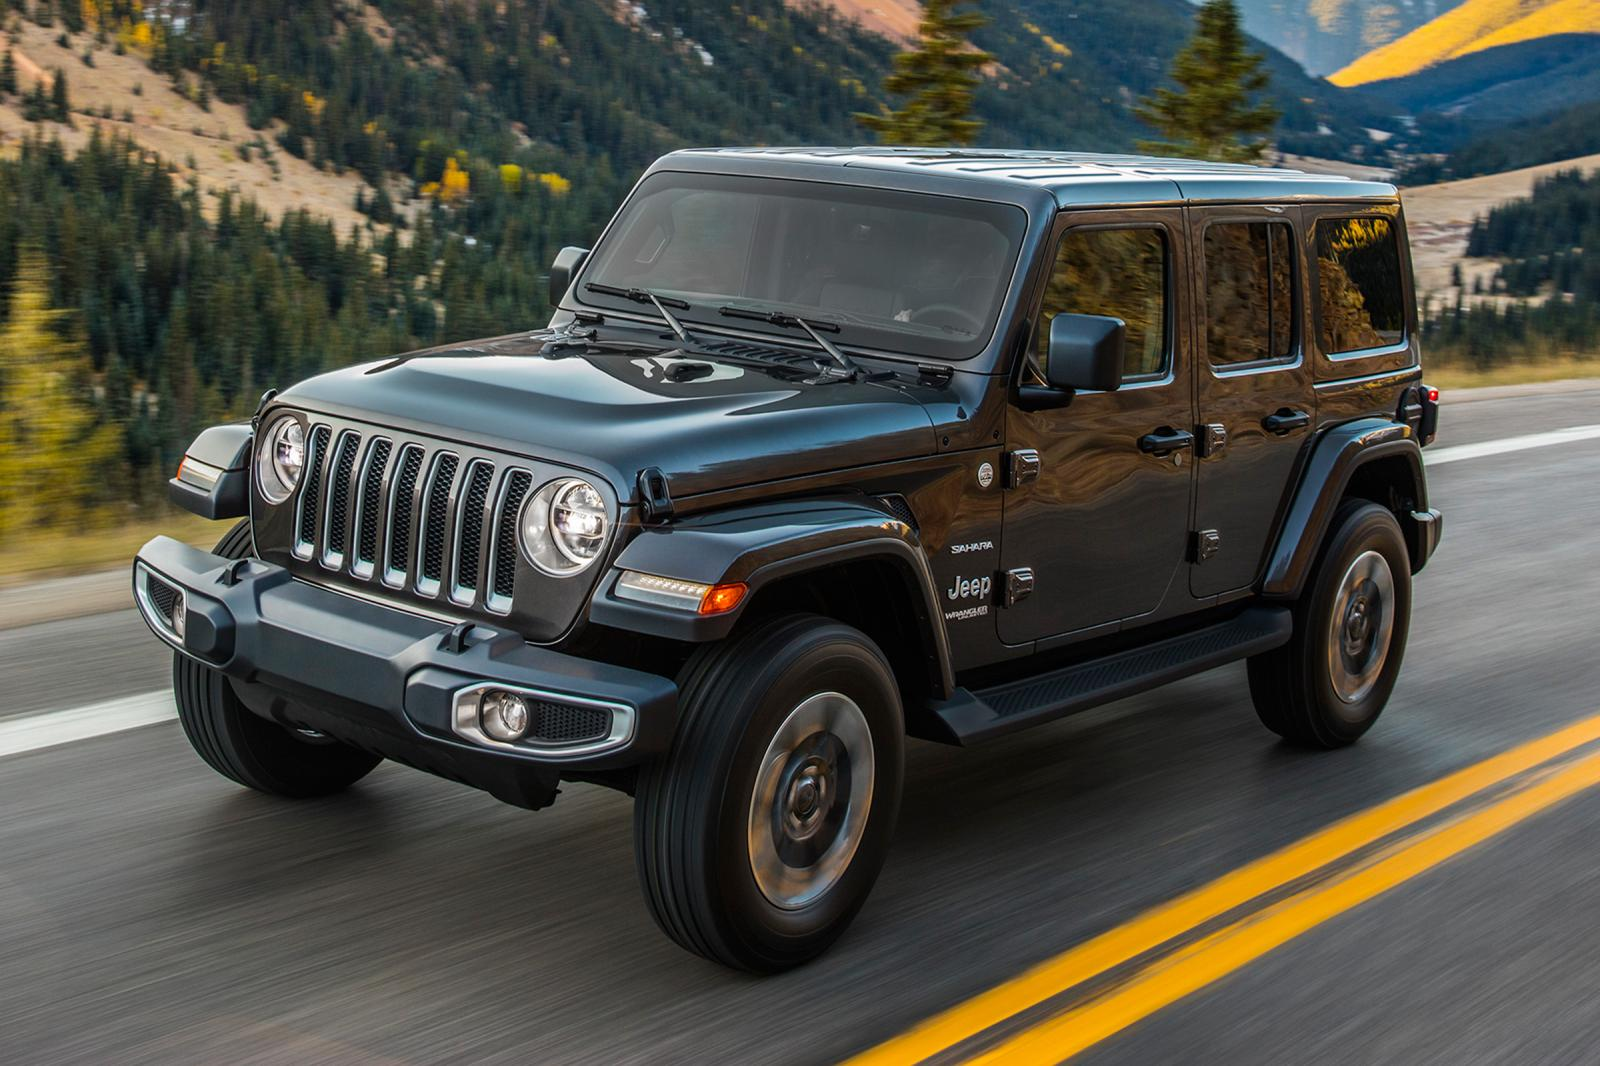 2019 Jeep Wrangler Price In The Philippines How It Wins The Heart Of Filipino Car Buyers